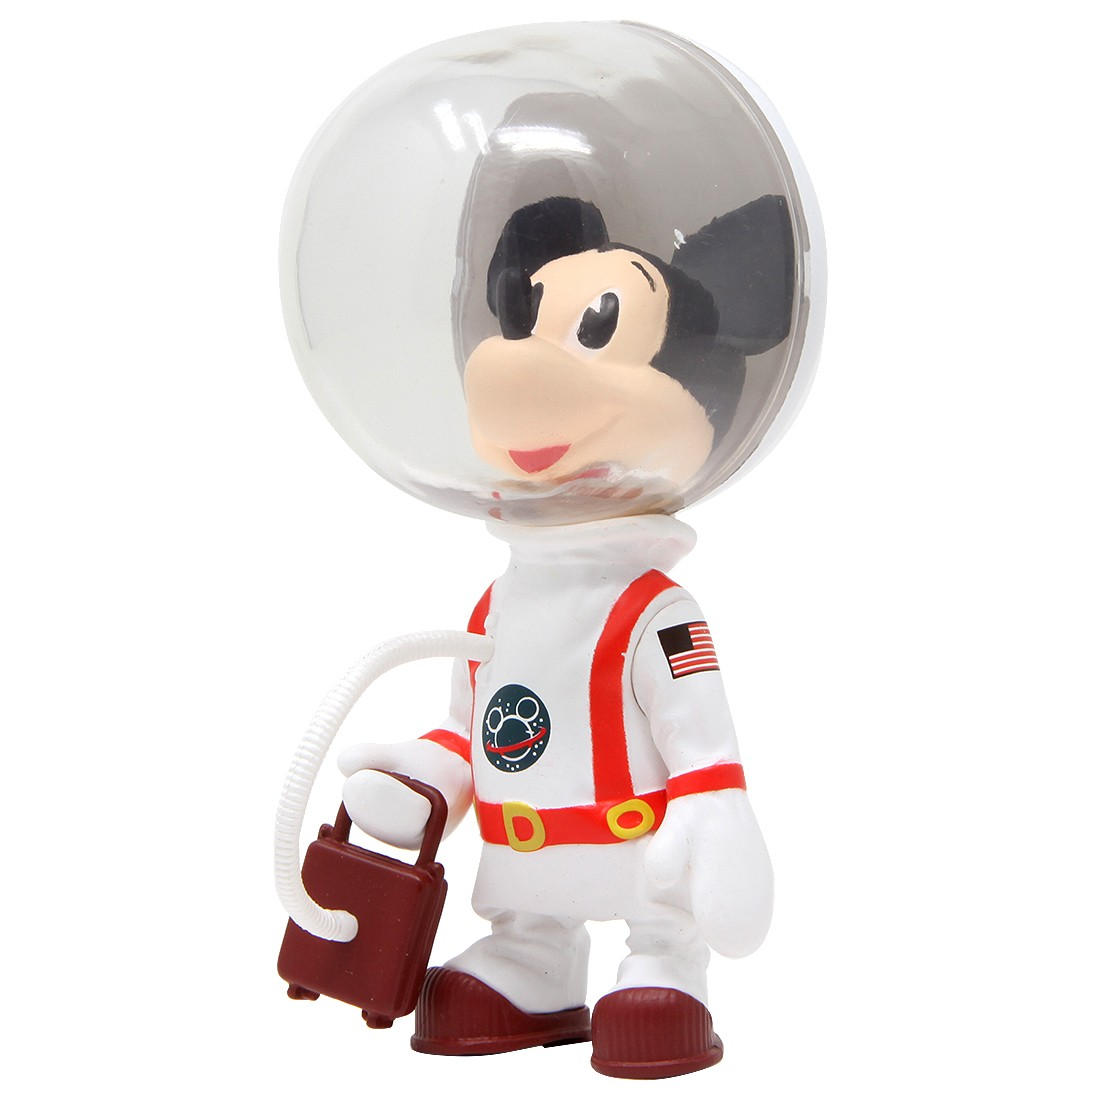 Medicom UDF Disney Series 8 Astronaut Mickey Mouse Vintage Toy Ver Ultra Detail Figure (white)